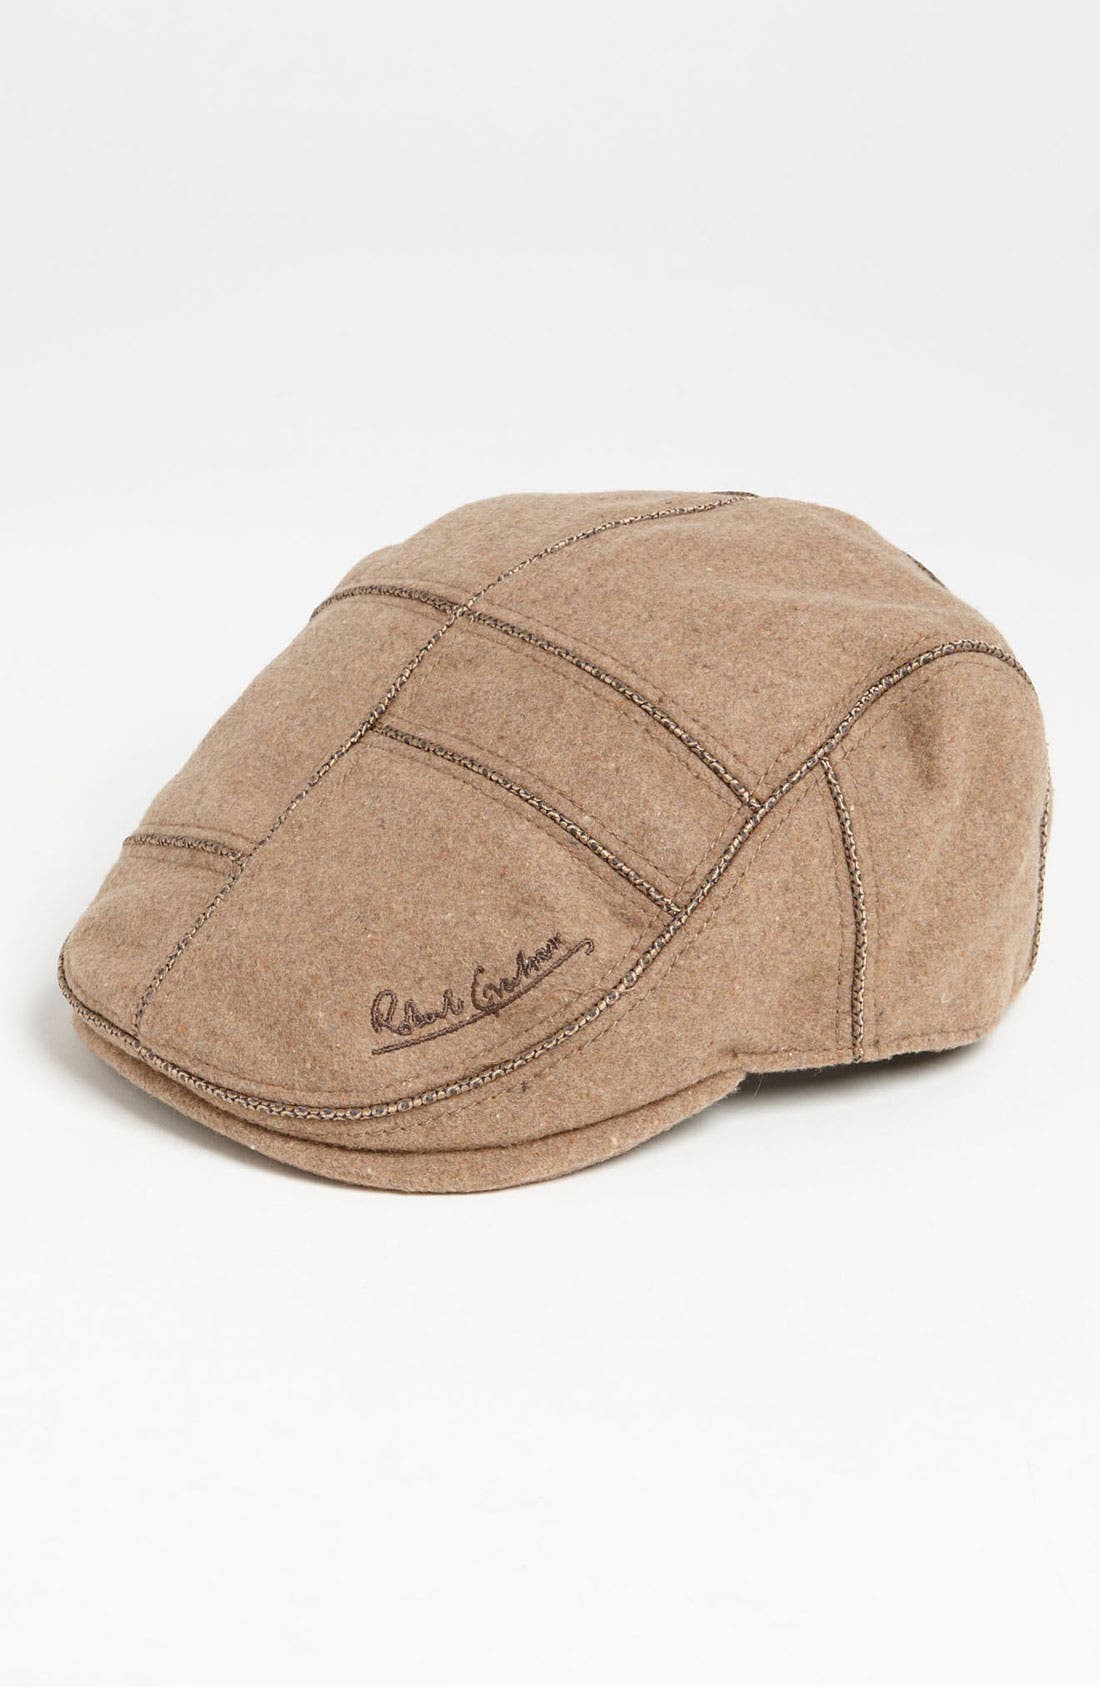 Main Image - Robert Graham 'Bandar' Driving Cap